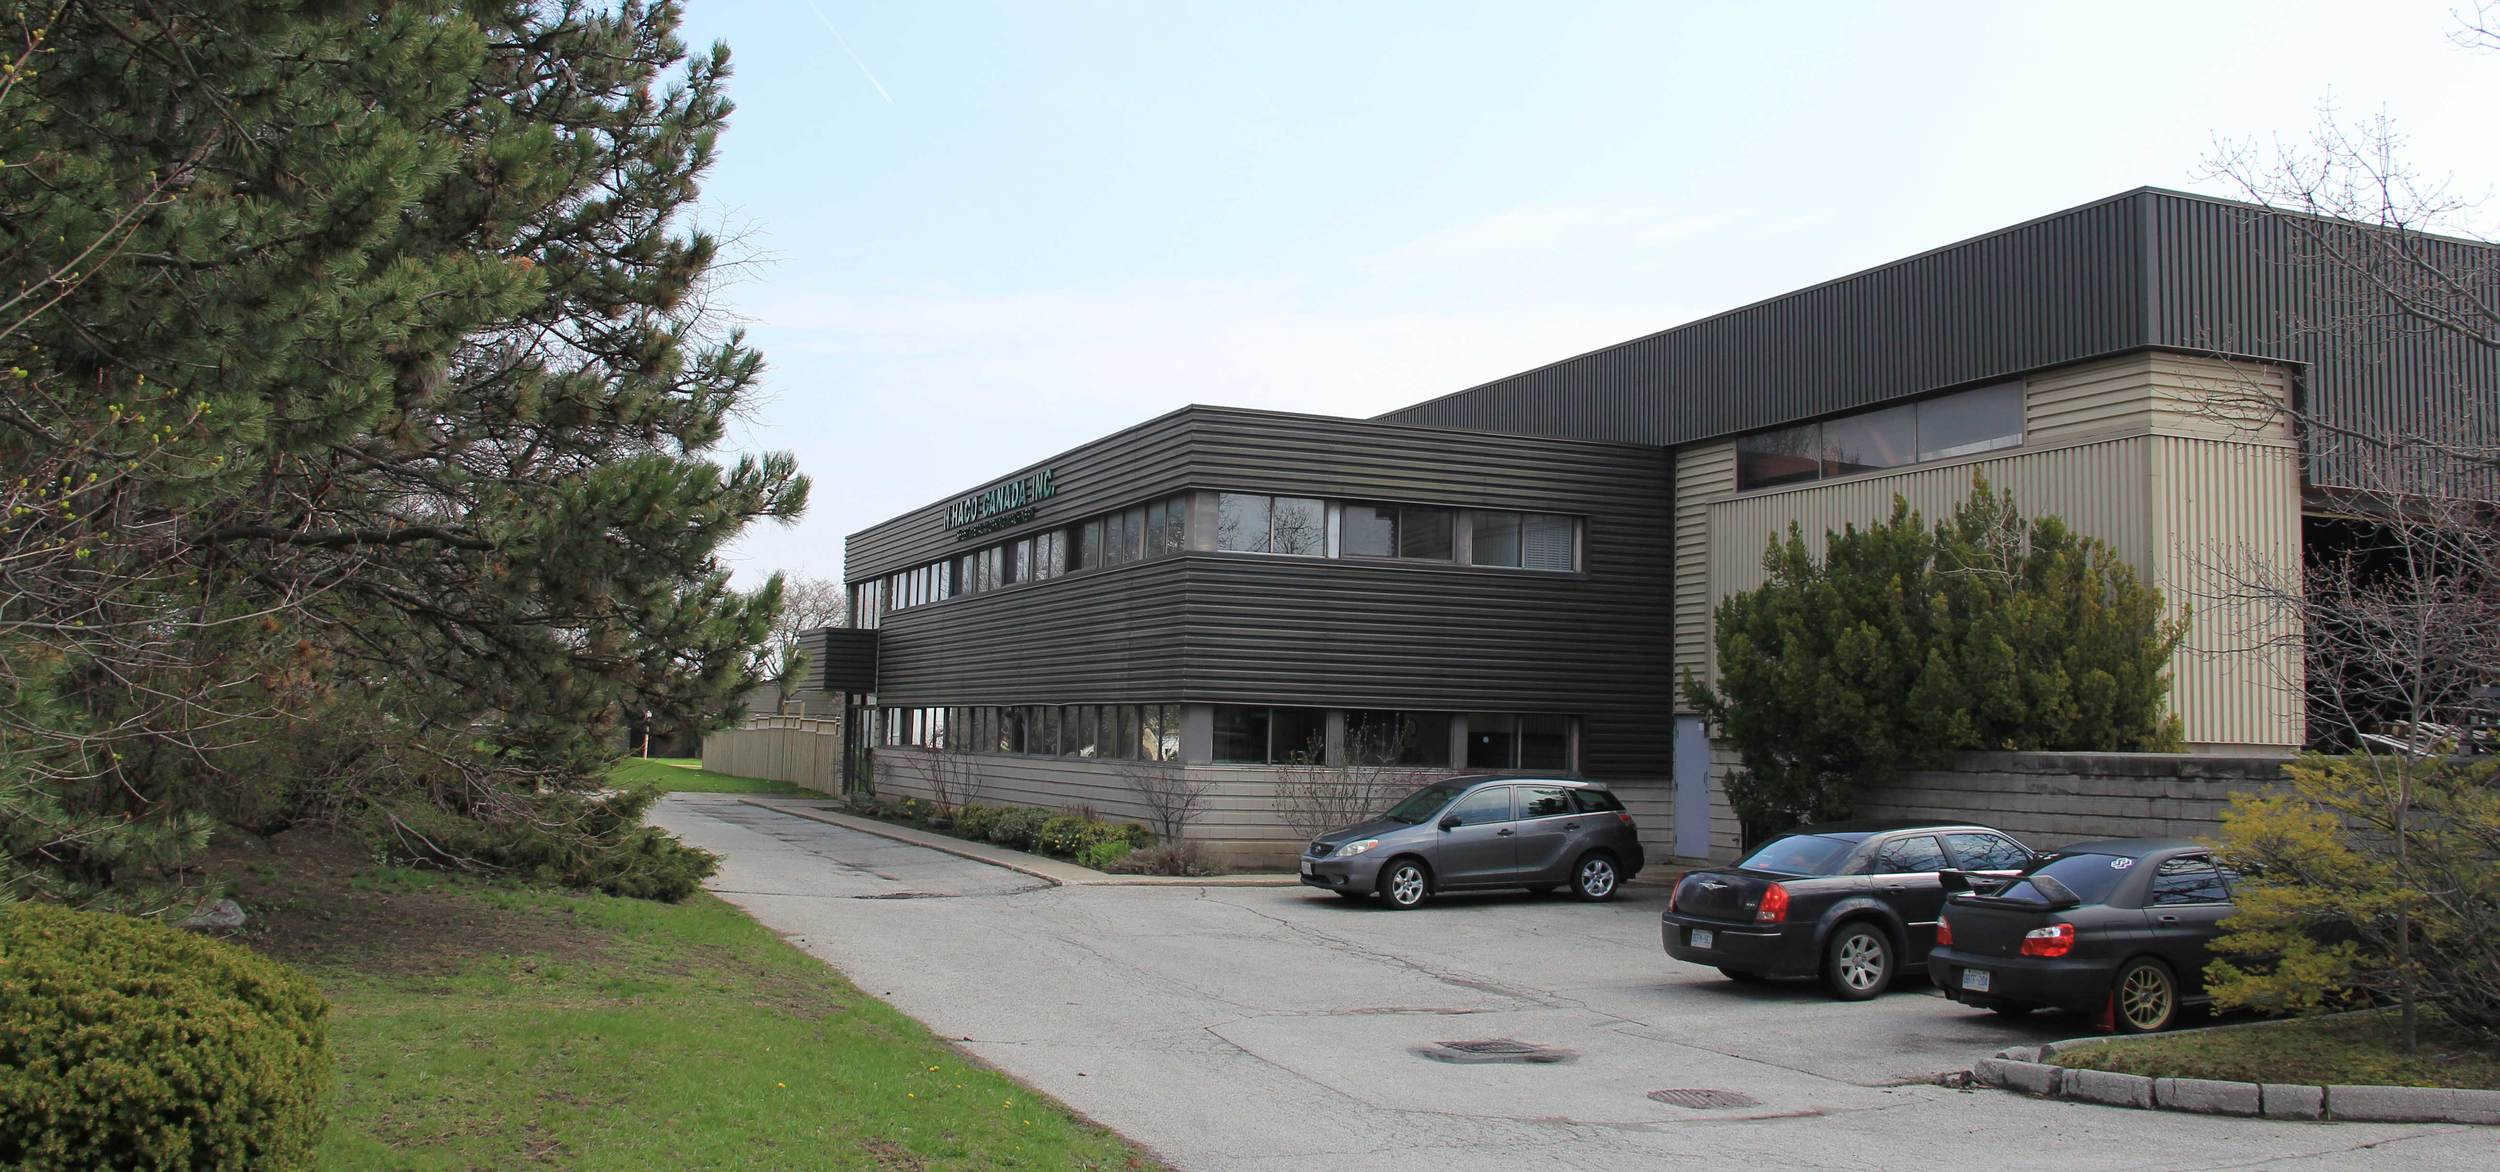 The new ICCO Building on Dunwin Dr.